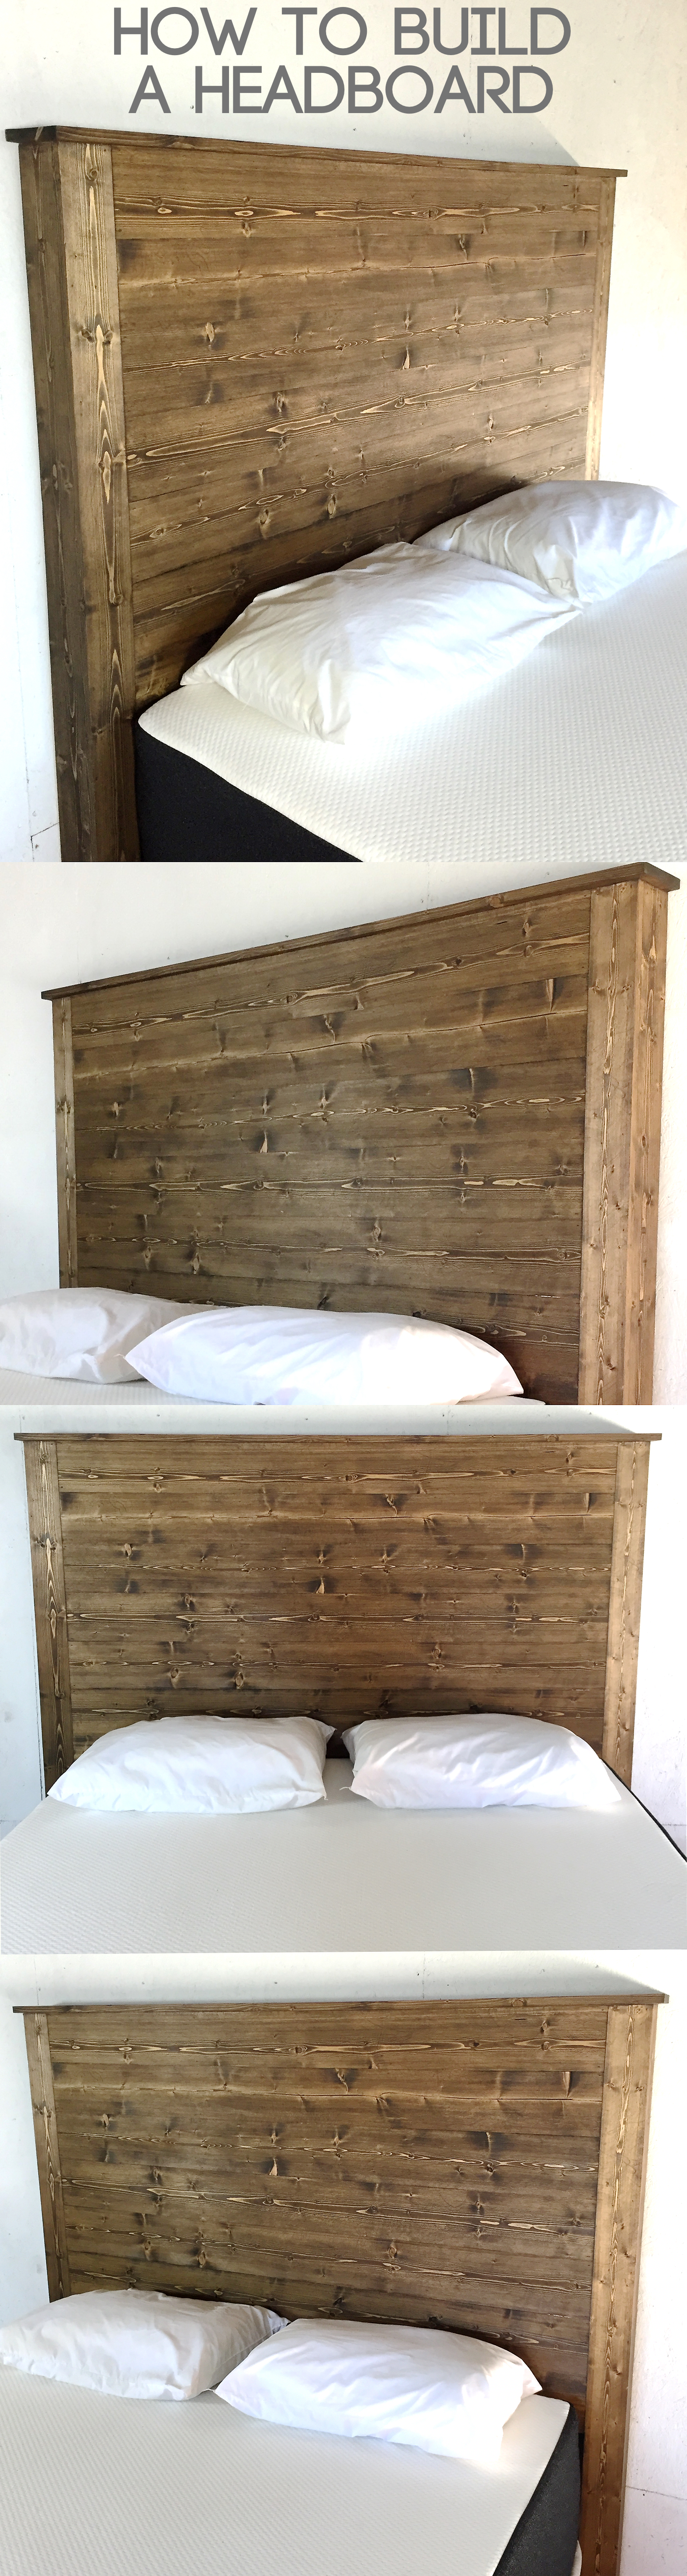 How To Build A Headboard Modern Builds